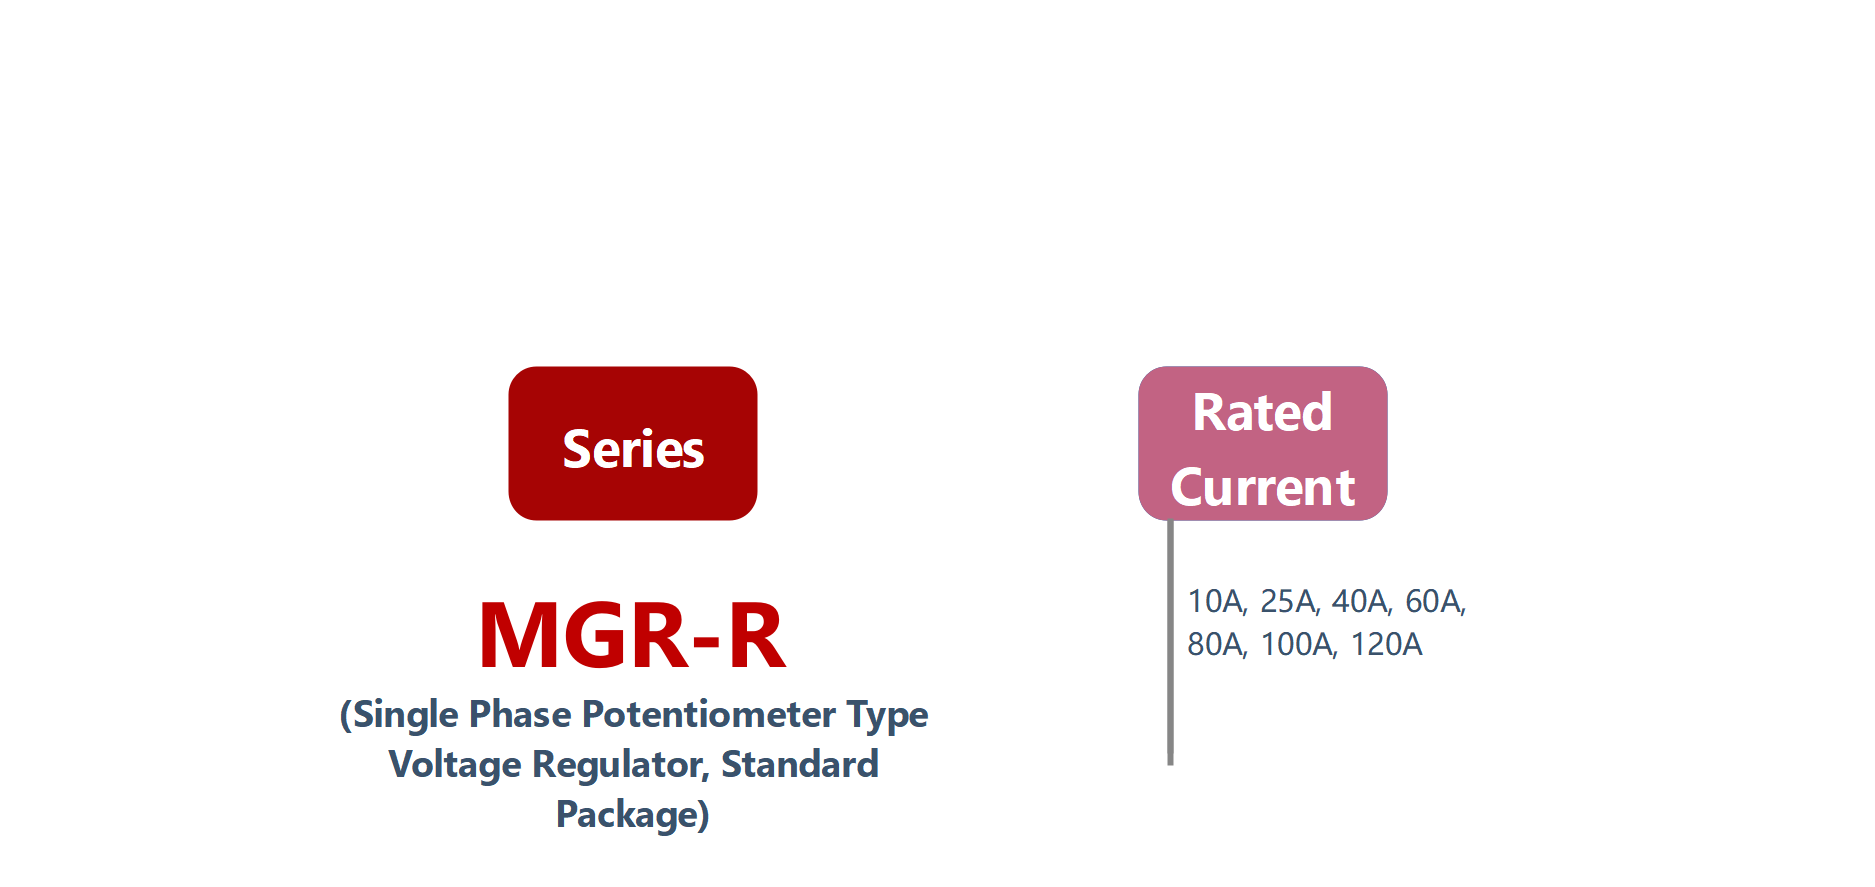 How to order MGR-R Series Voltage Power Regulator